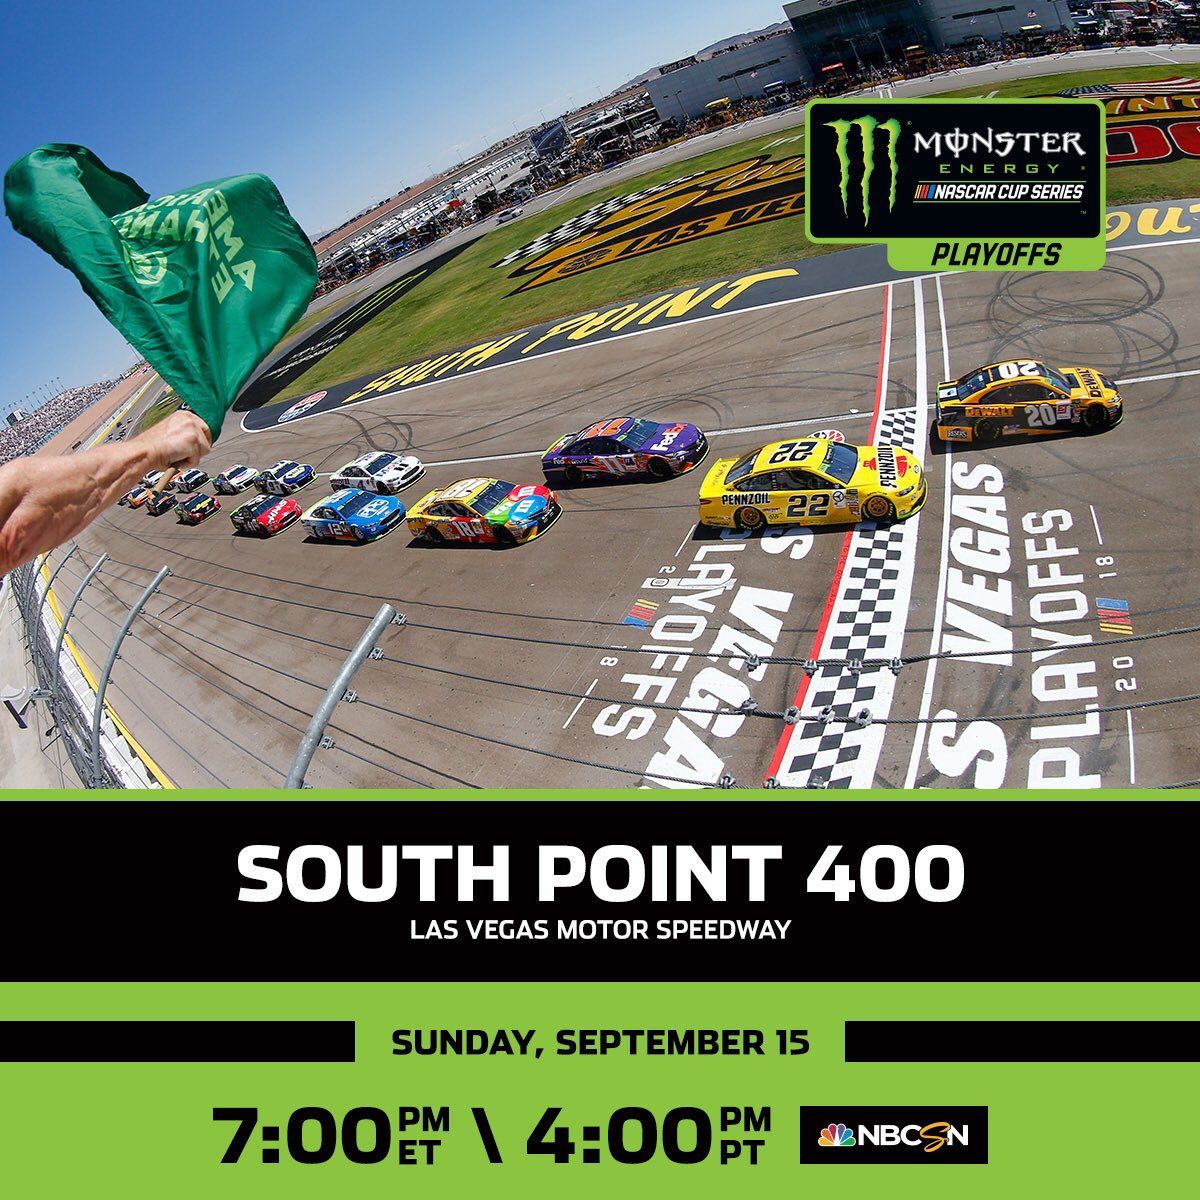 The race to the championship starts NOW. The #SouthPoint400 takes over @NBCSN at 6:00 p.m. CT.